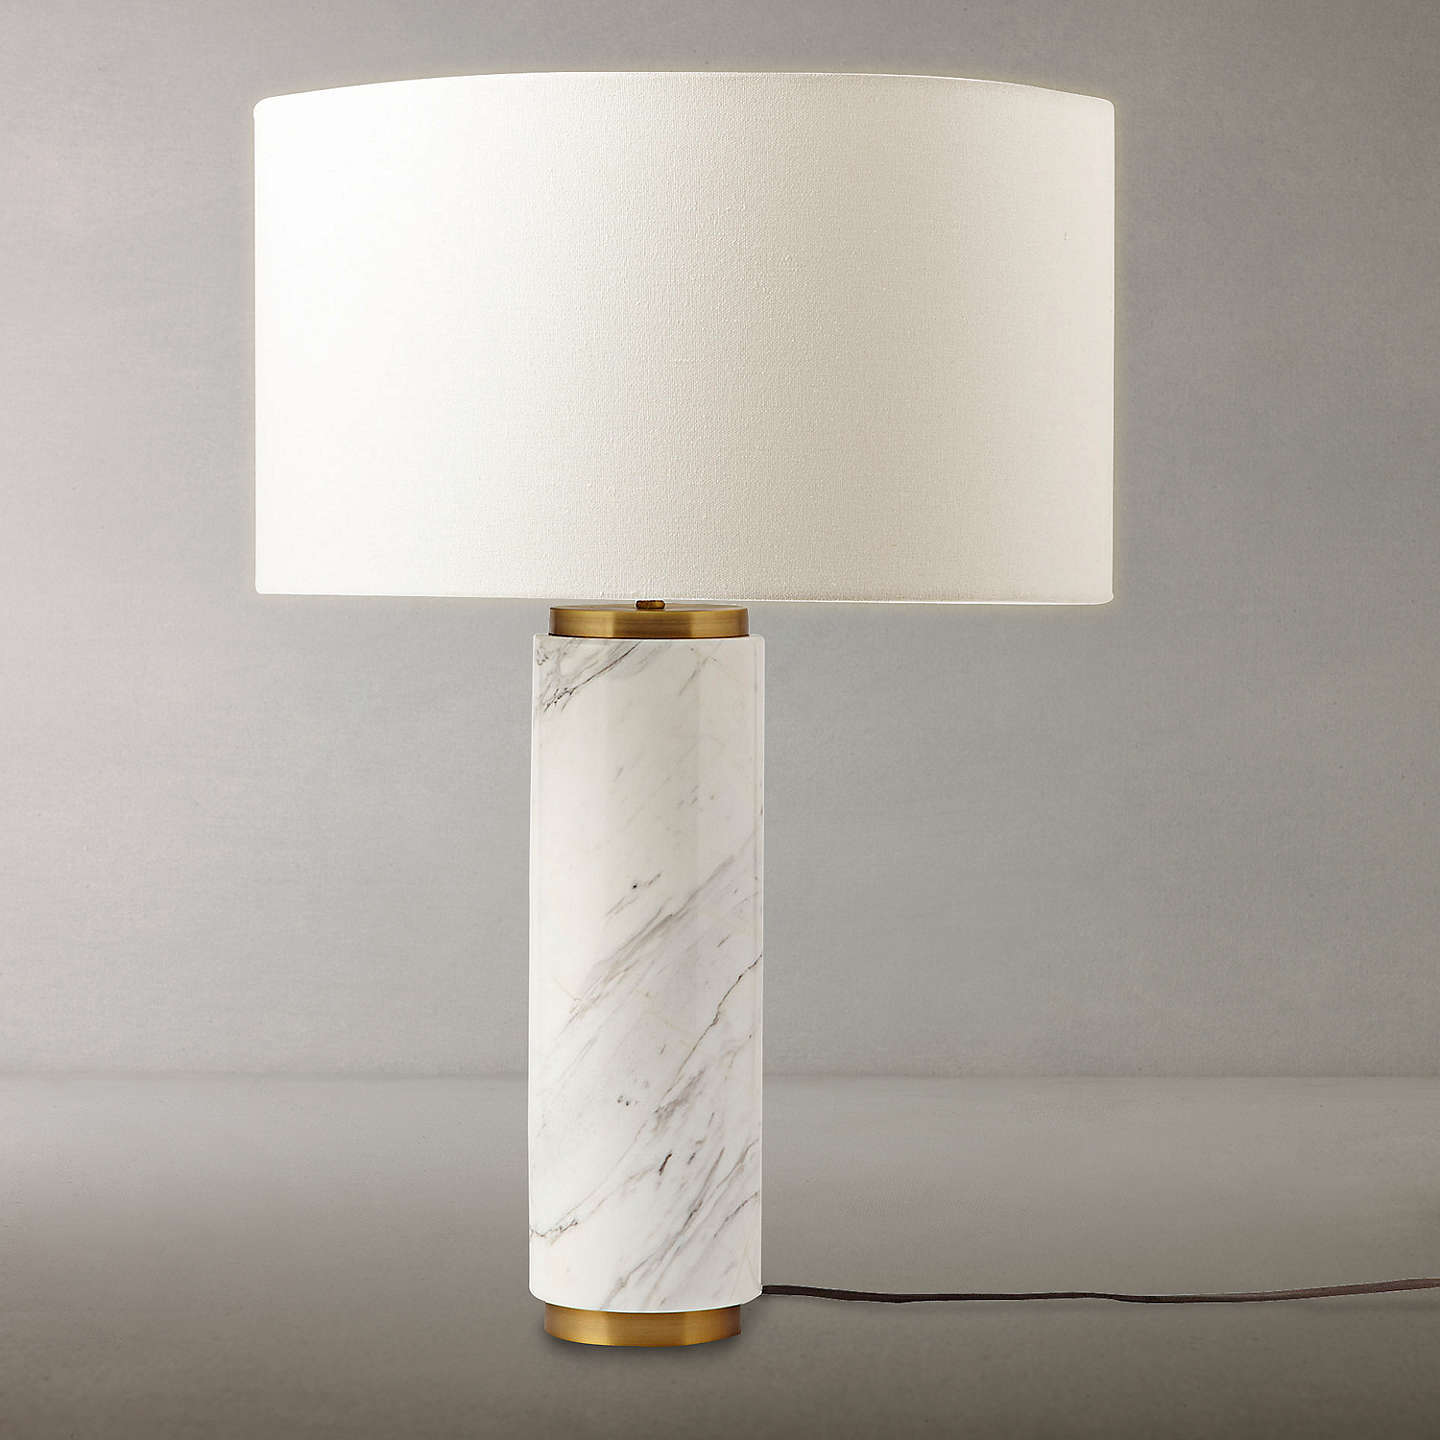 10 Of The Best Marble Table Lamps Interior Design Ideas